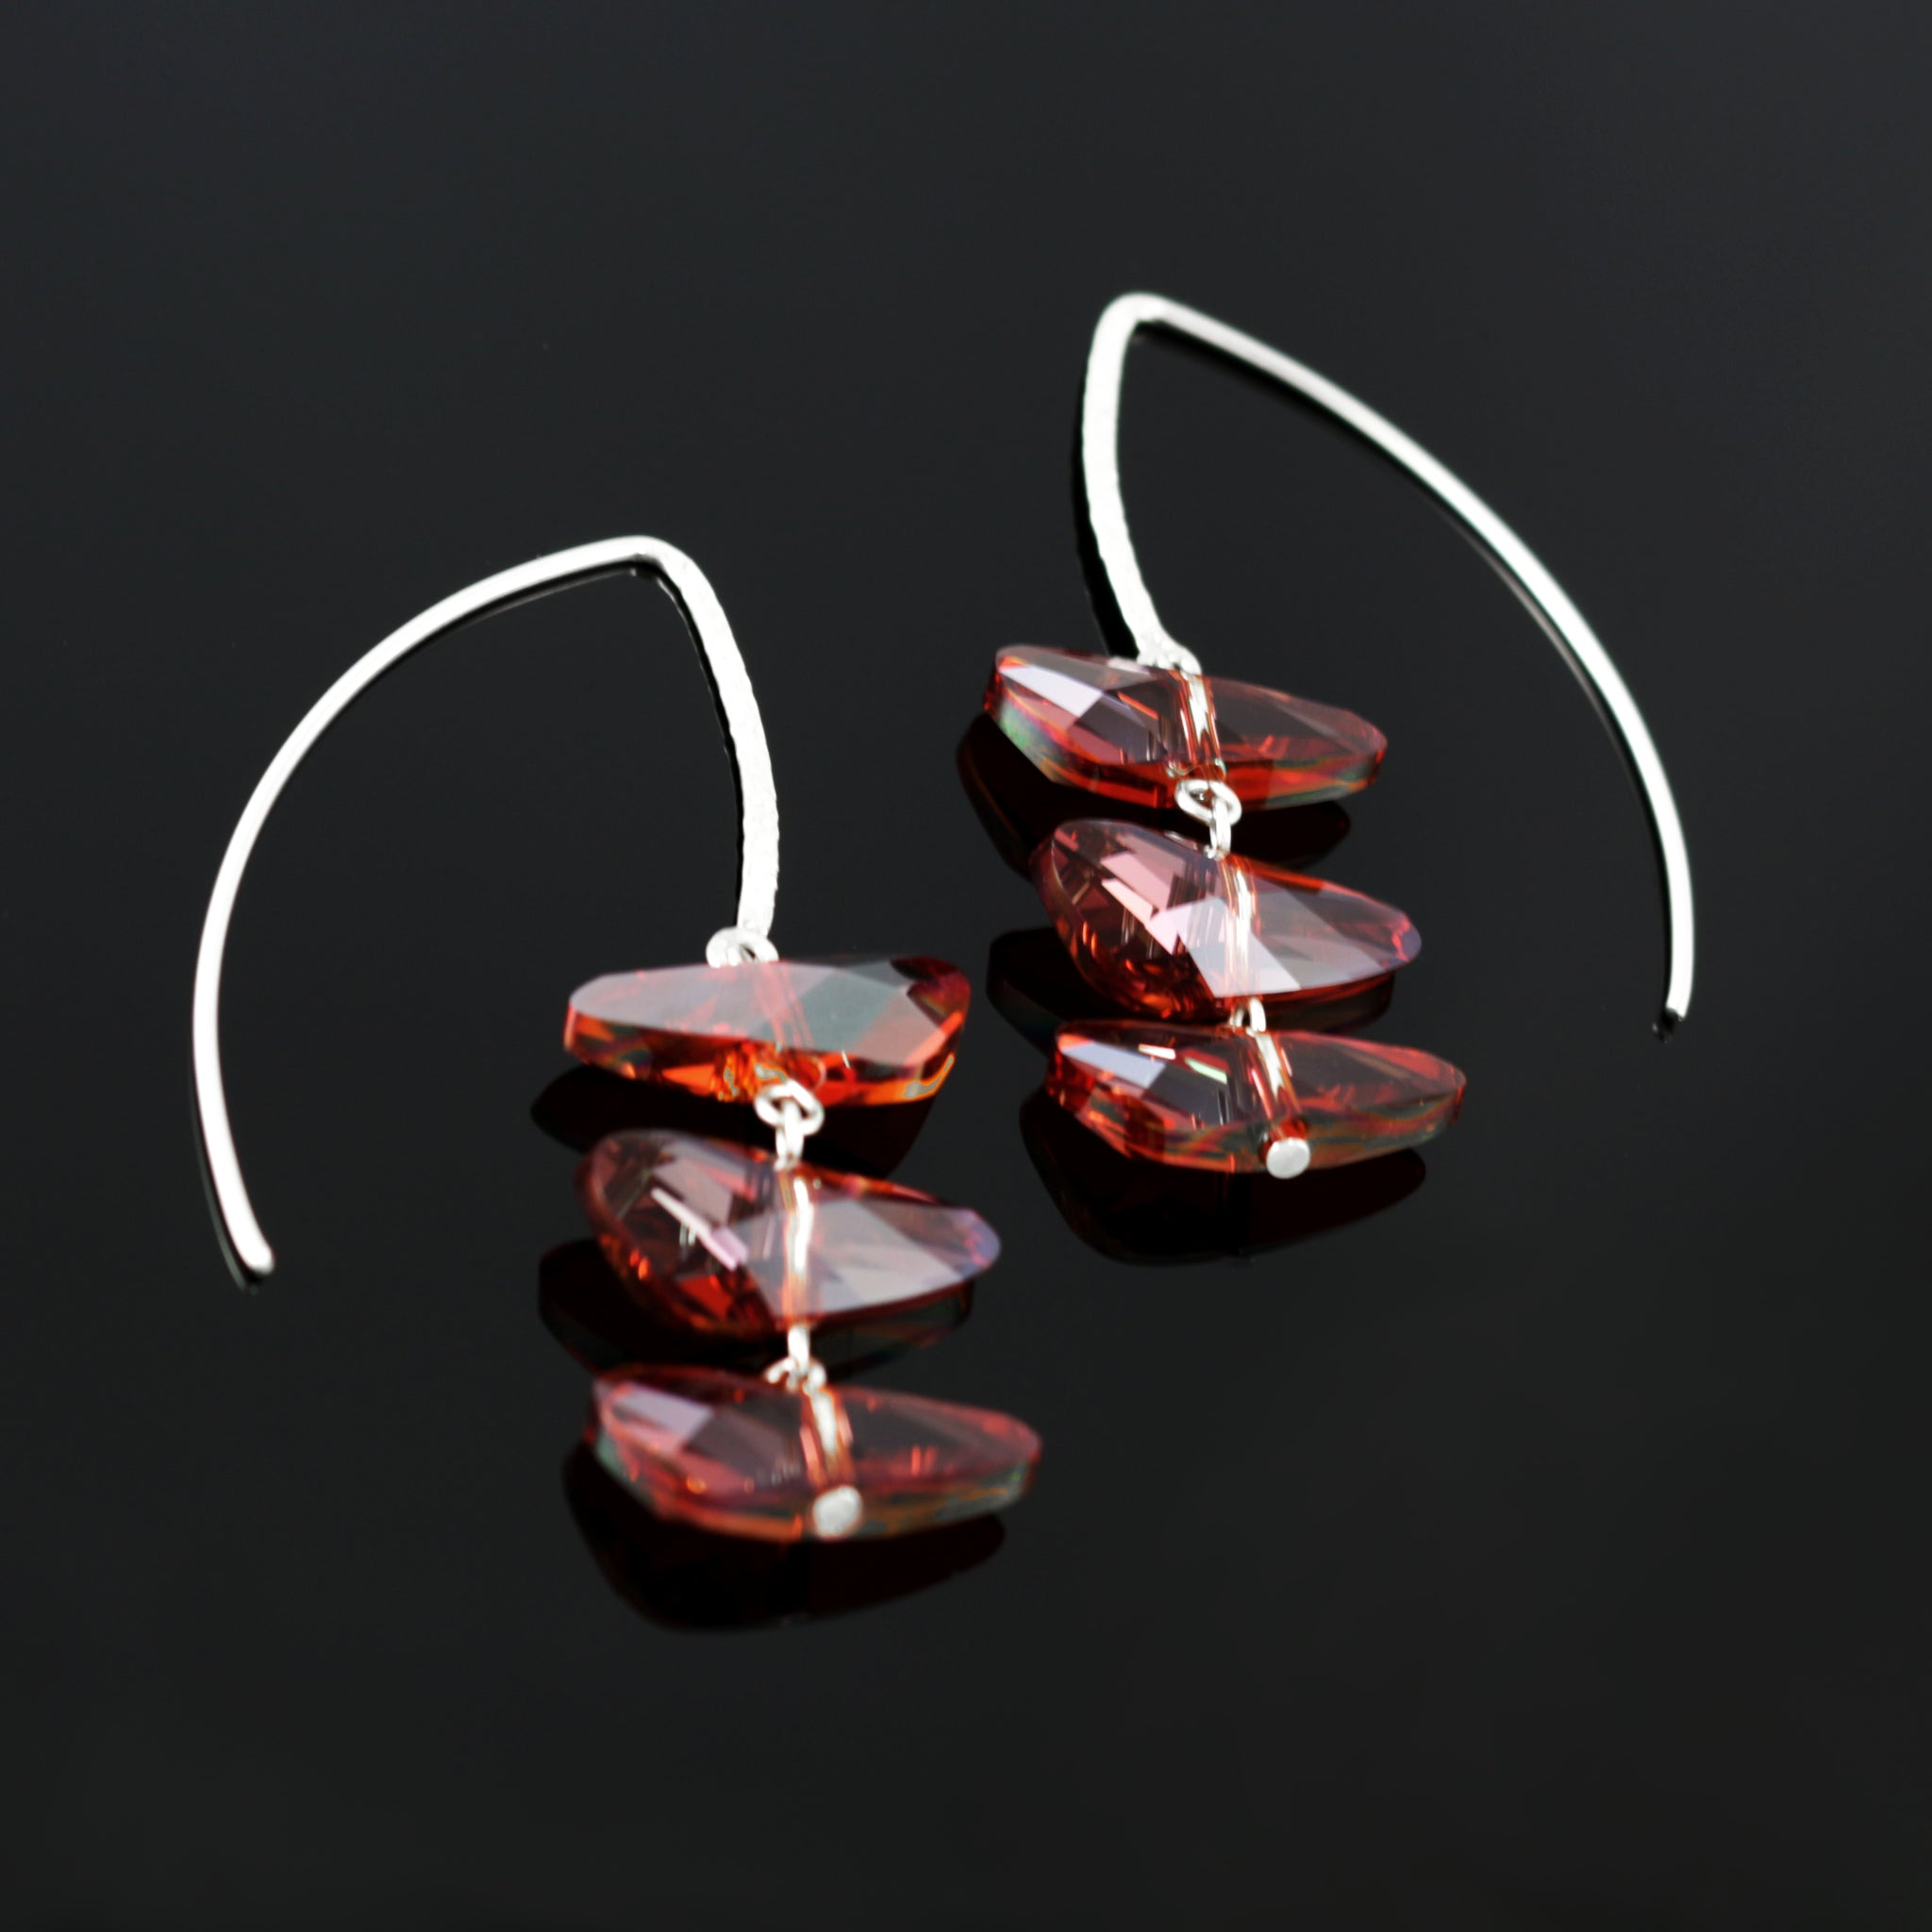 Reflections Earrings in Red Magma